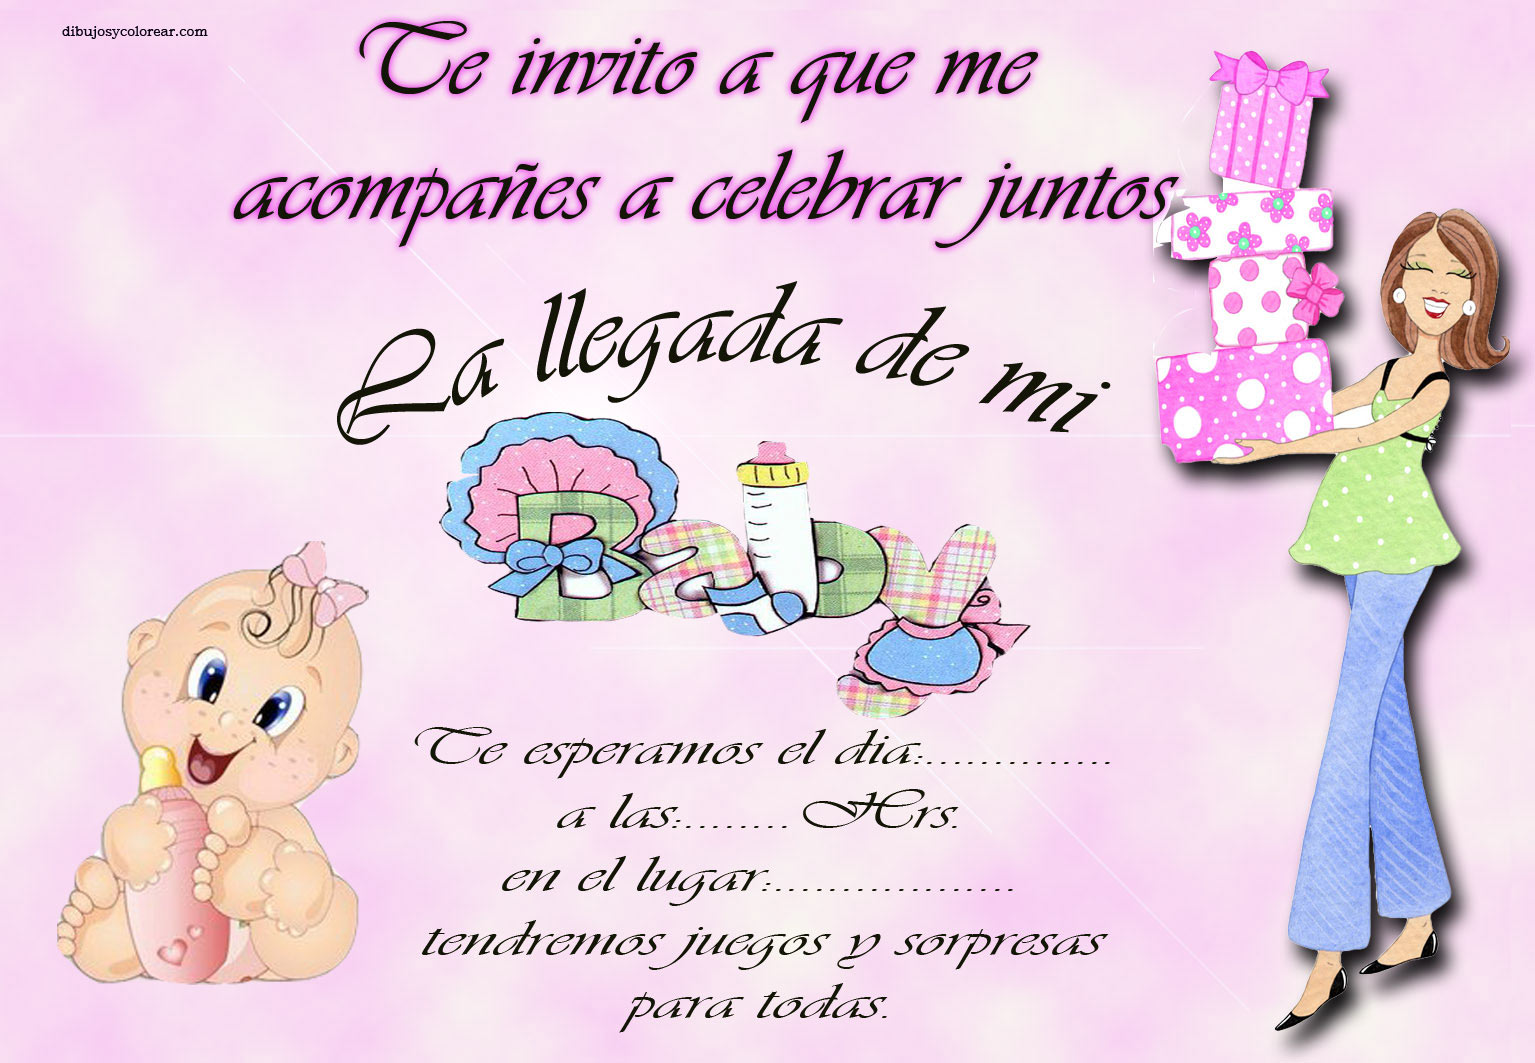 Invitaciones para baby shower also adornos para baby shower niño also arreglos para baby shower also baby shower para niño